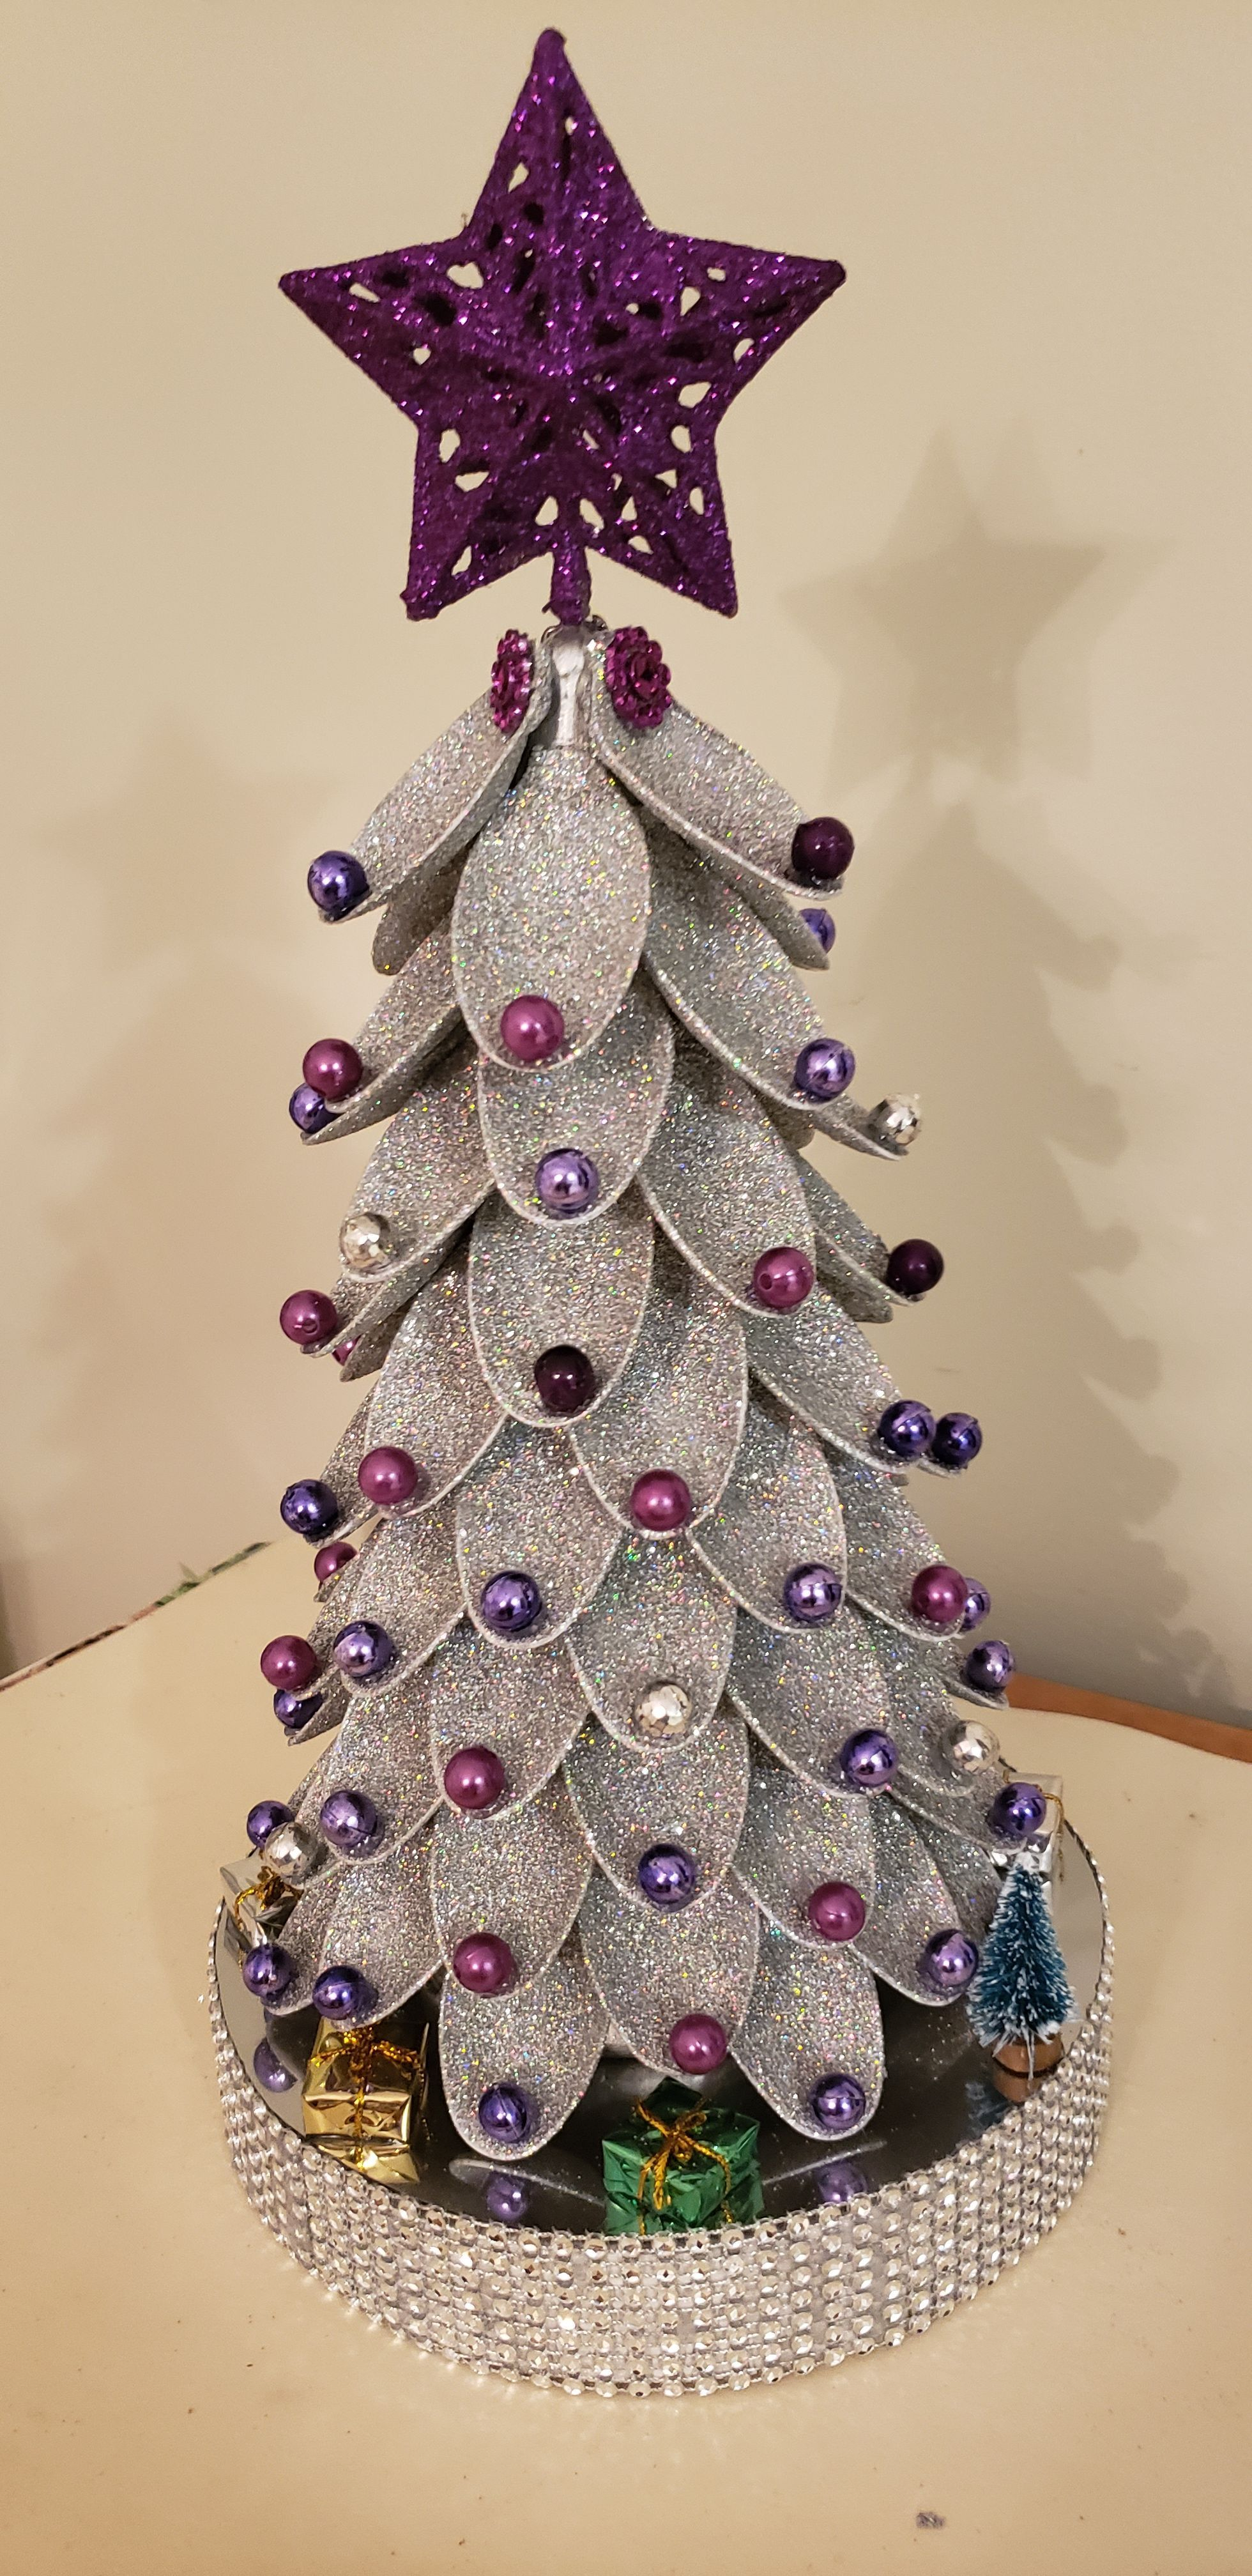 Small Christmas Tree - Purple and Silver #sunflowerchristmastree This is a small Christmas tree, accessorized with 3 types of purple beads, holographic silver glitter, foam, silver rhinestone mesh, decorations, purple star, sunflower mesh. This measures at 14 inches. #sunflowerchristmastree Small Christmas Tree - Purple and Silver #sunflowerchristmastree This is a small Christmas tree, accessorized with 3 types of purple beads, holographic silver glitter, foam, silver rhinestone mesh, decoration #sunflowerchristmastree